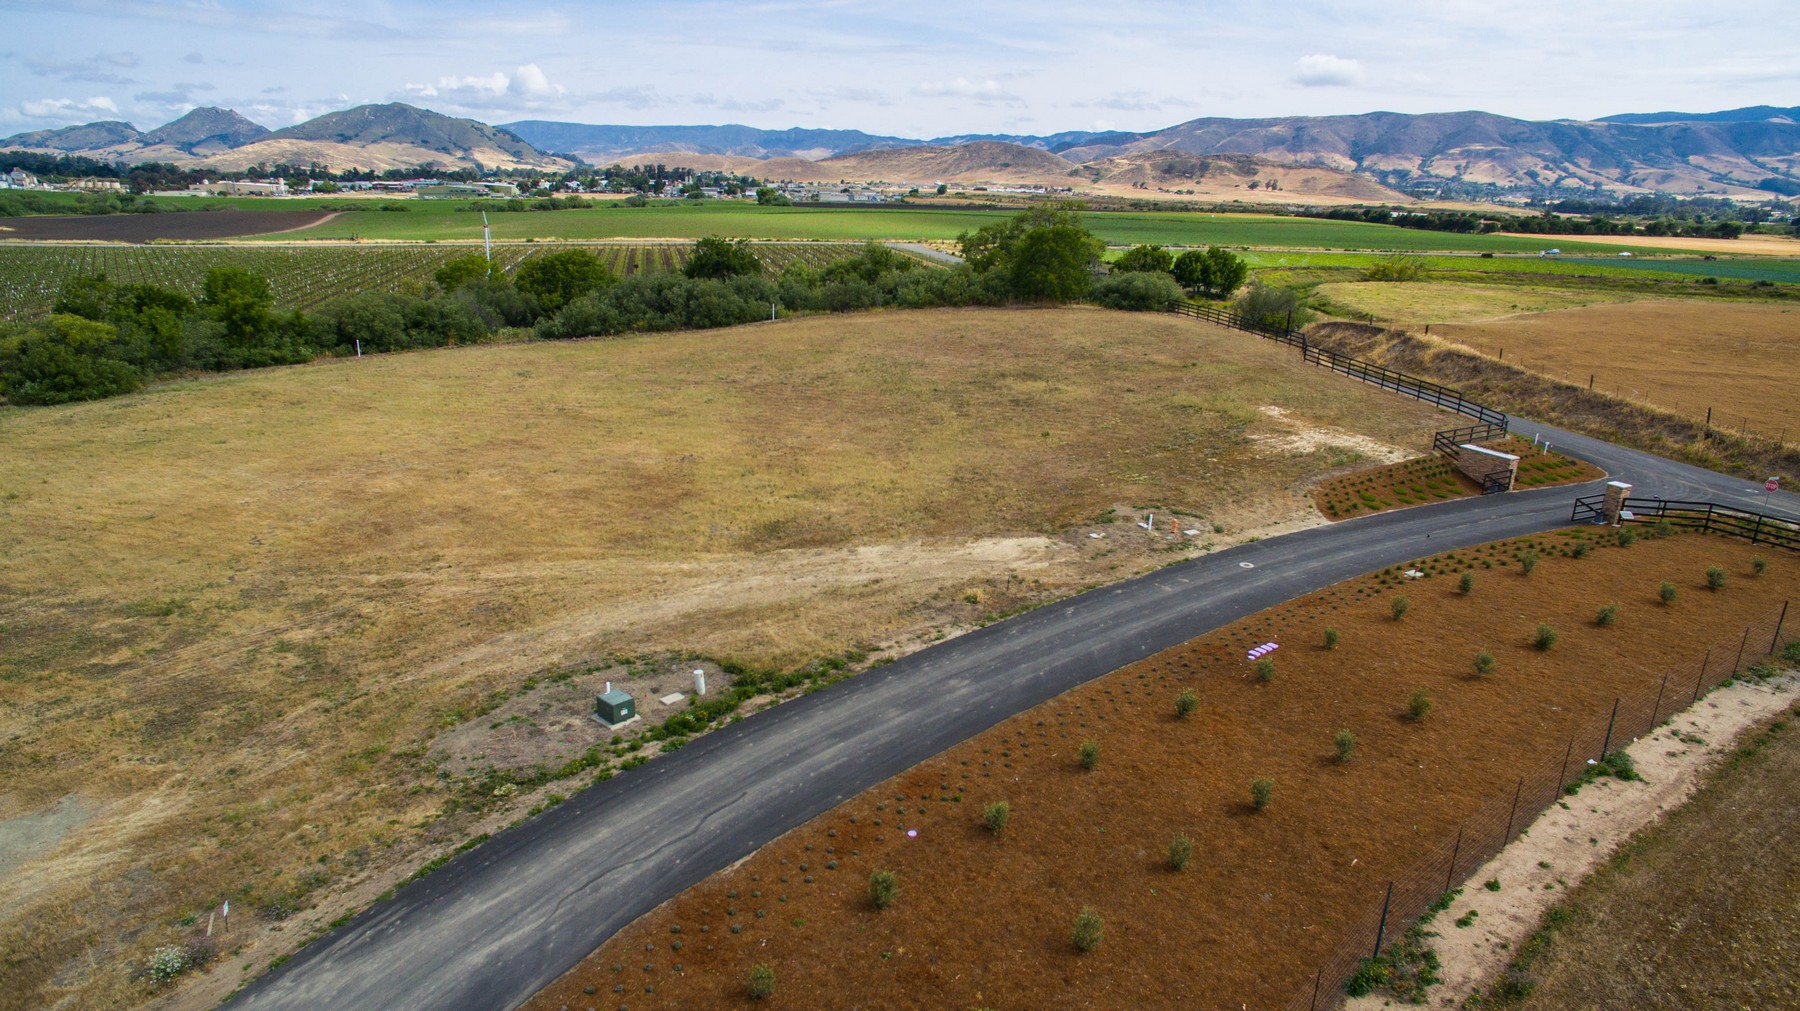 Land for Sale at One Acre Creekside Parcel Jespersen Road #Lot 2 San Luis Obispo, California 93401 United States